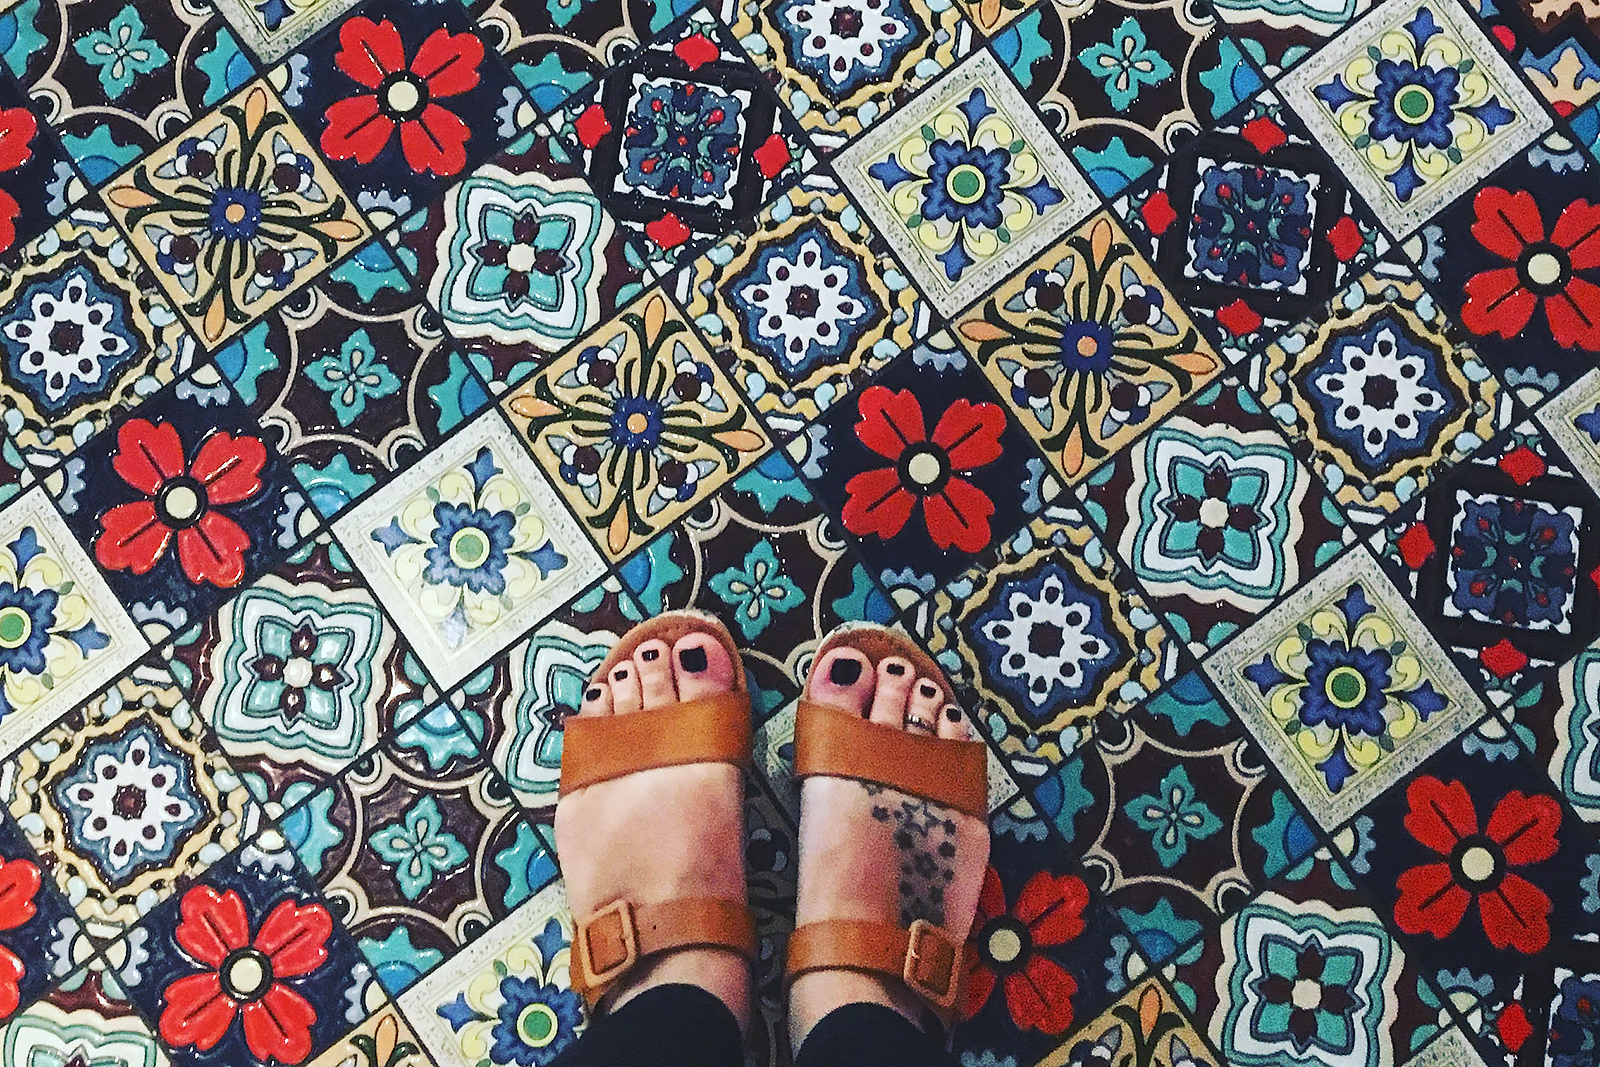 A mosaic tile floor with feet in sandals